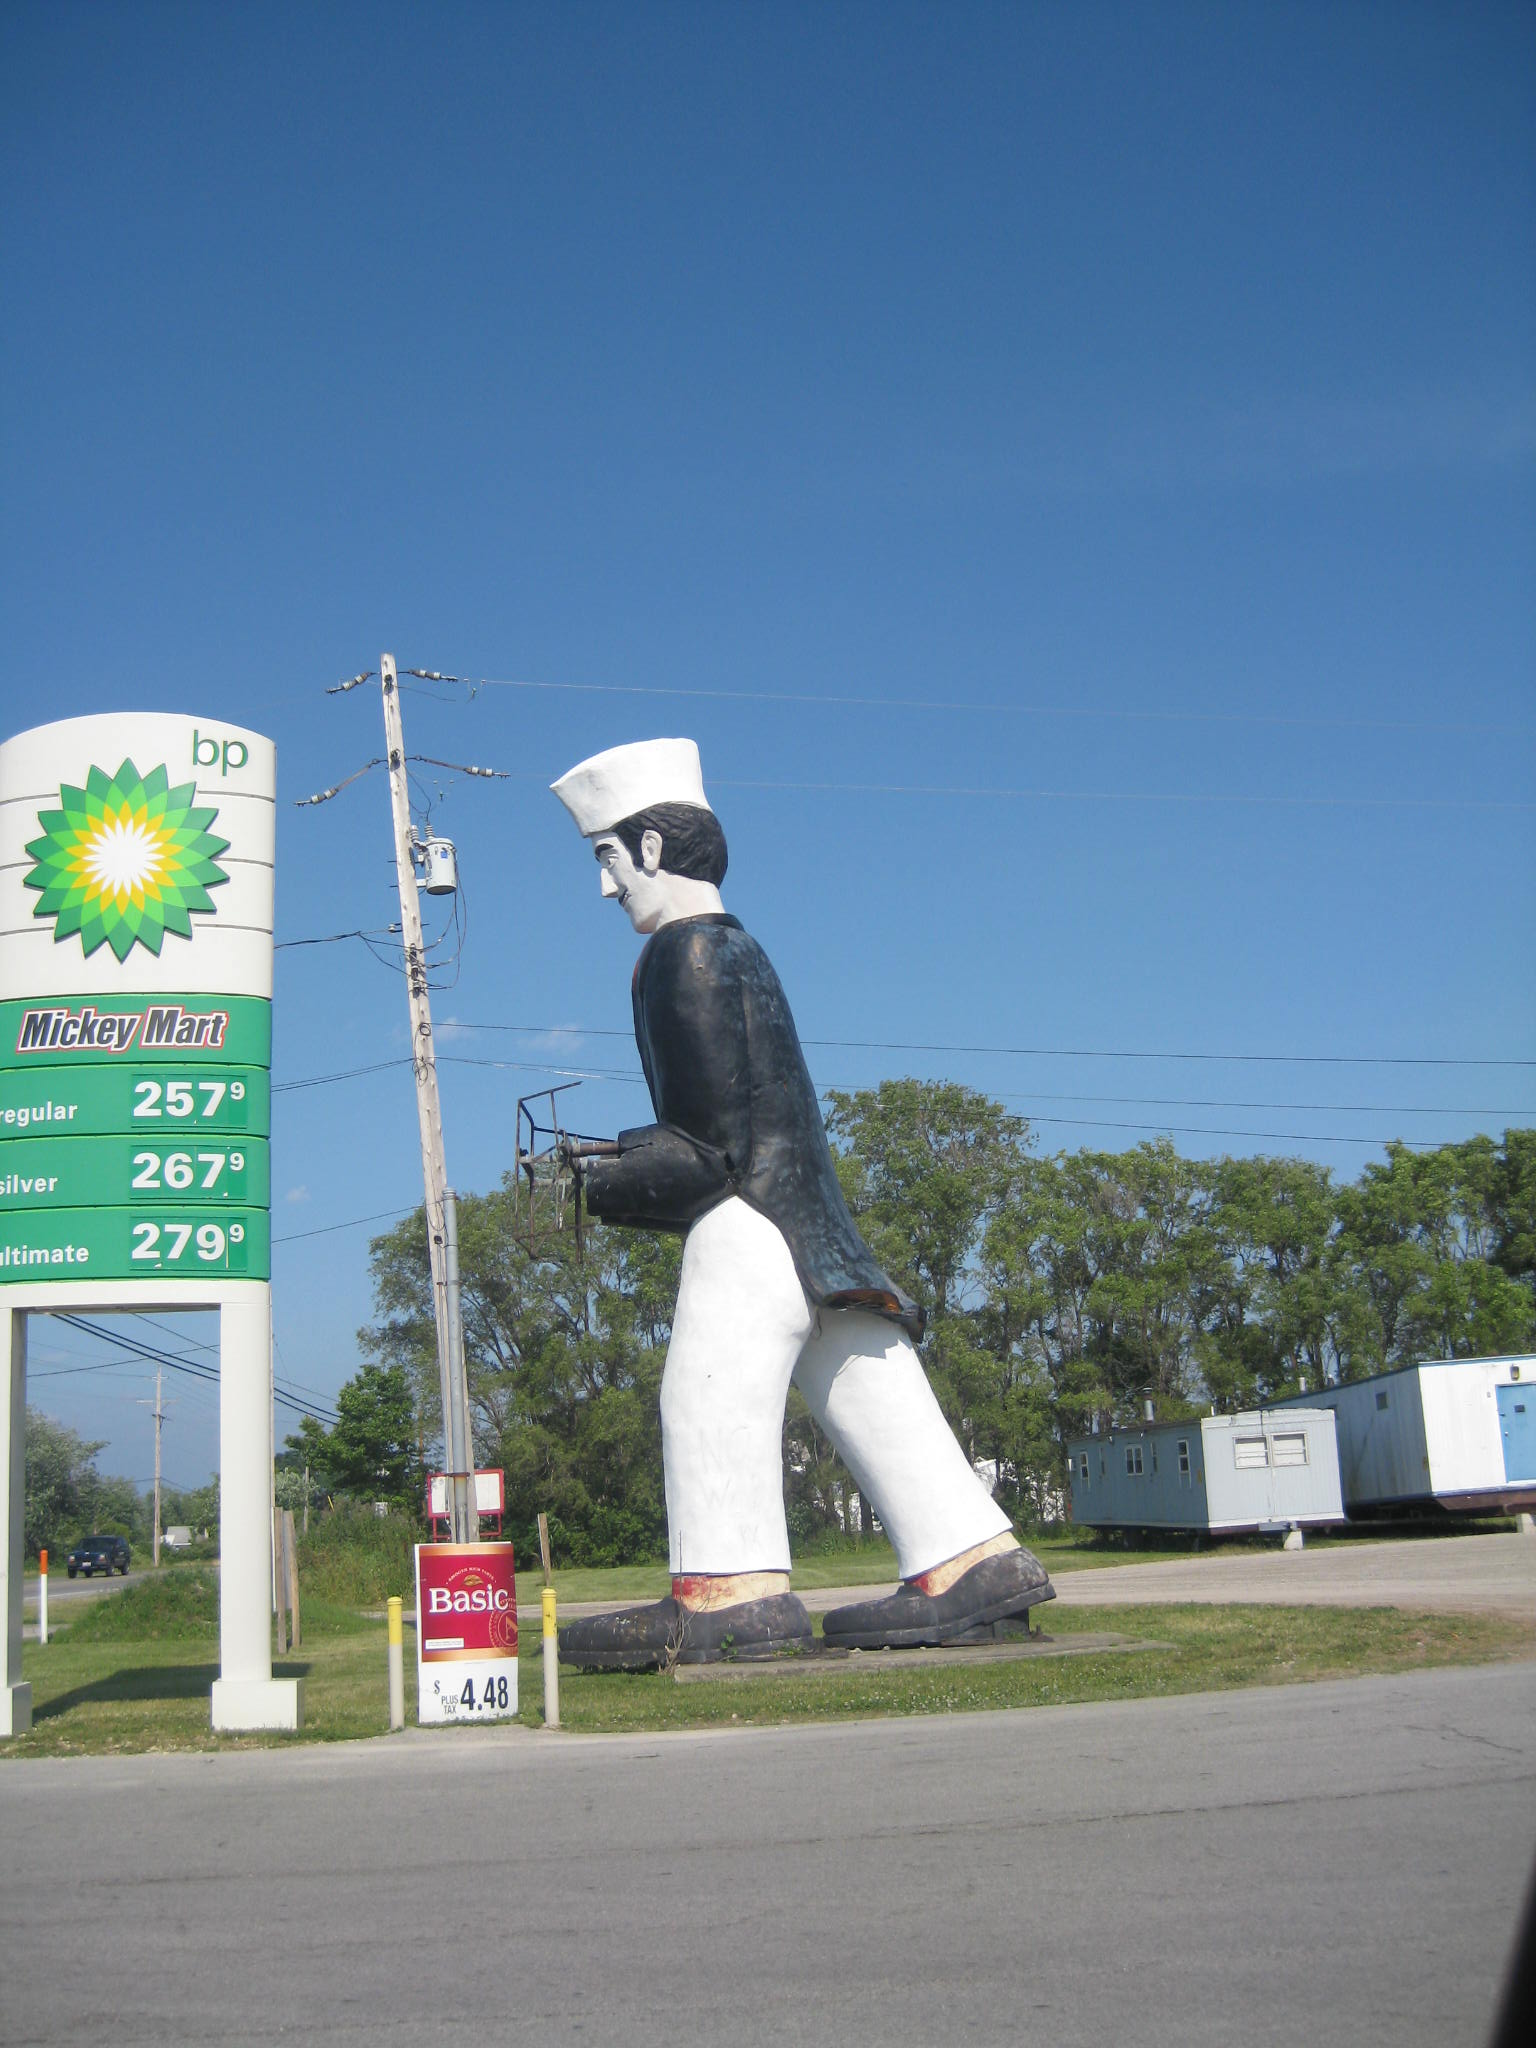 I have no idea what this is, but it stands next to a BP gas station and nothing else near East Harbor State Park, Ohio. The waiter (?) looked like he used to carry a tray.